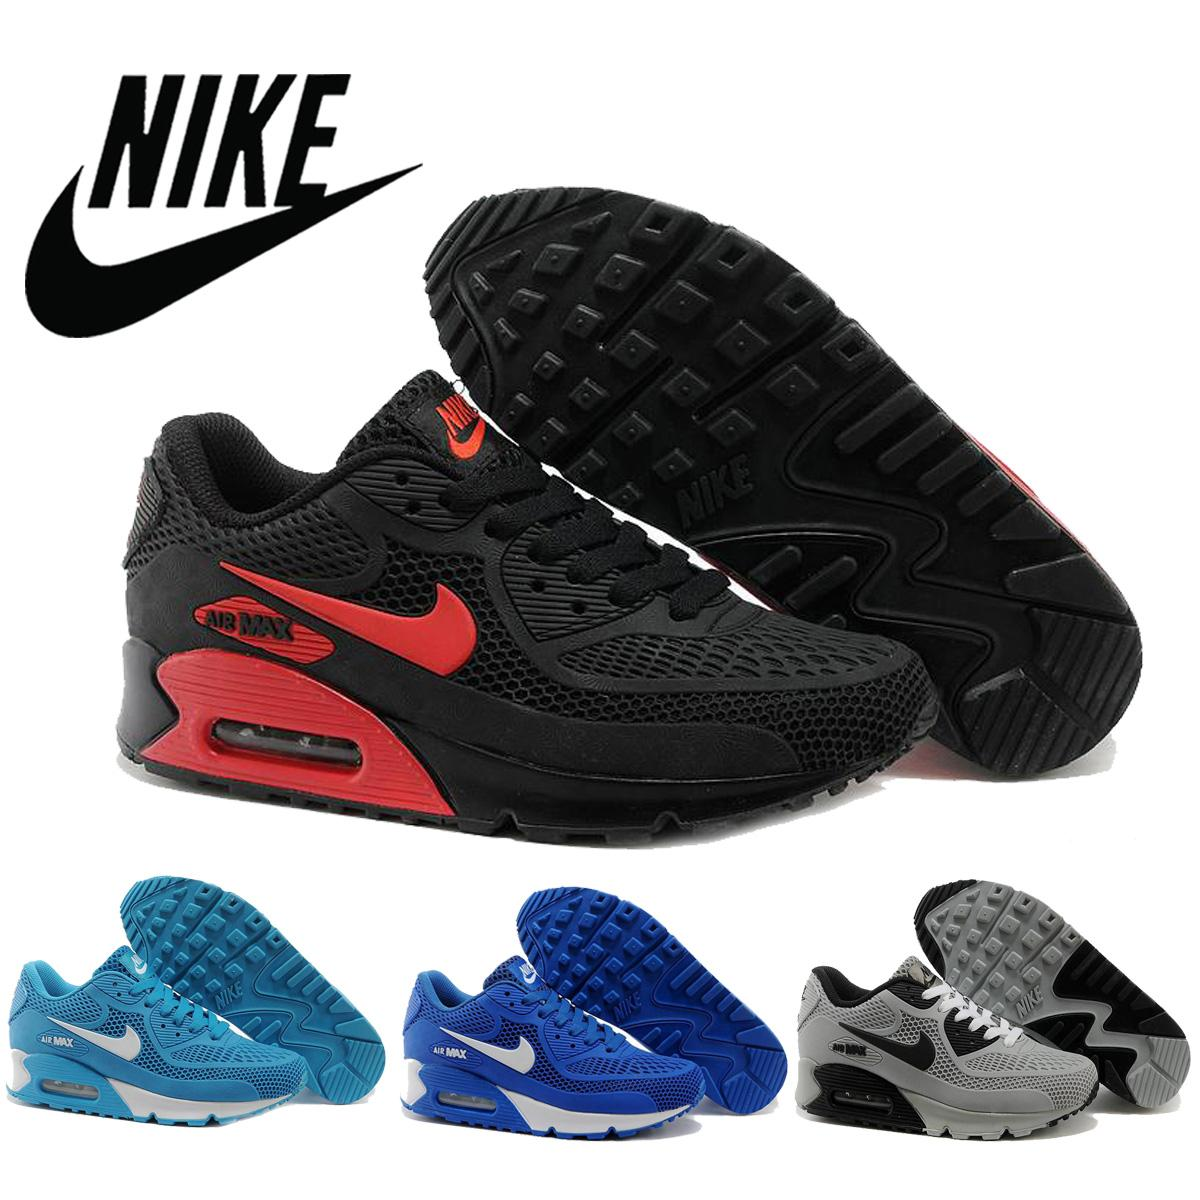 AIR MAX 90 Infrared | Stuff in 2019 | Nike air max for women